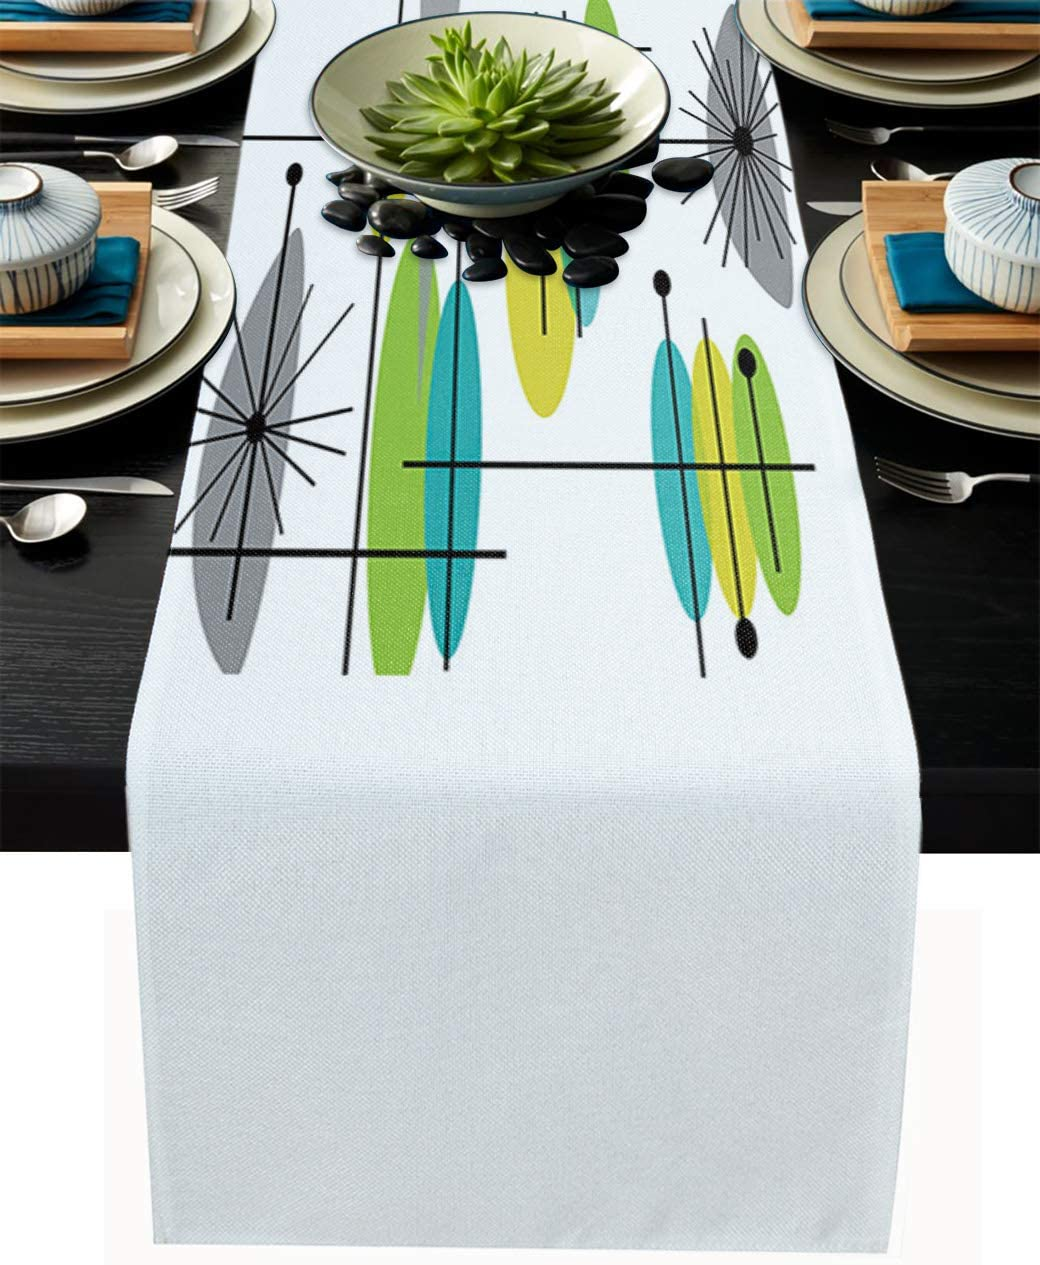 Cloud Dream Home Cotton Linen Table Runner Mid Century Green Yellow Gray Table Setting Decor Lotus Simple Abstract for Garden Wedding Parties Dinner Decoration - 14 x 72 inches